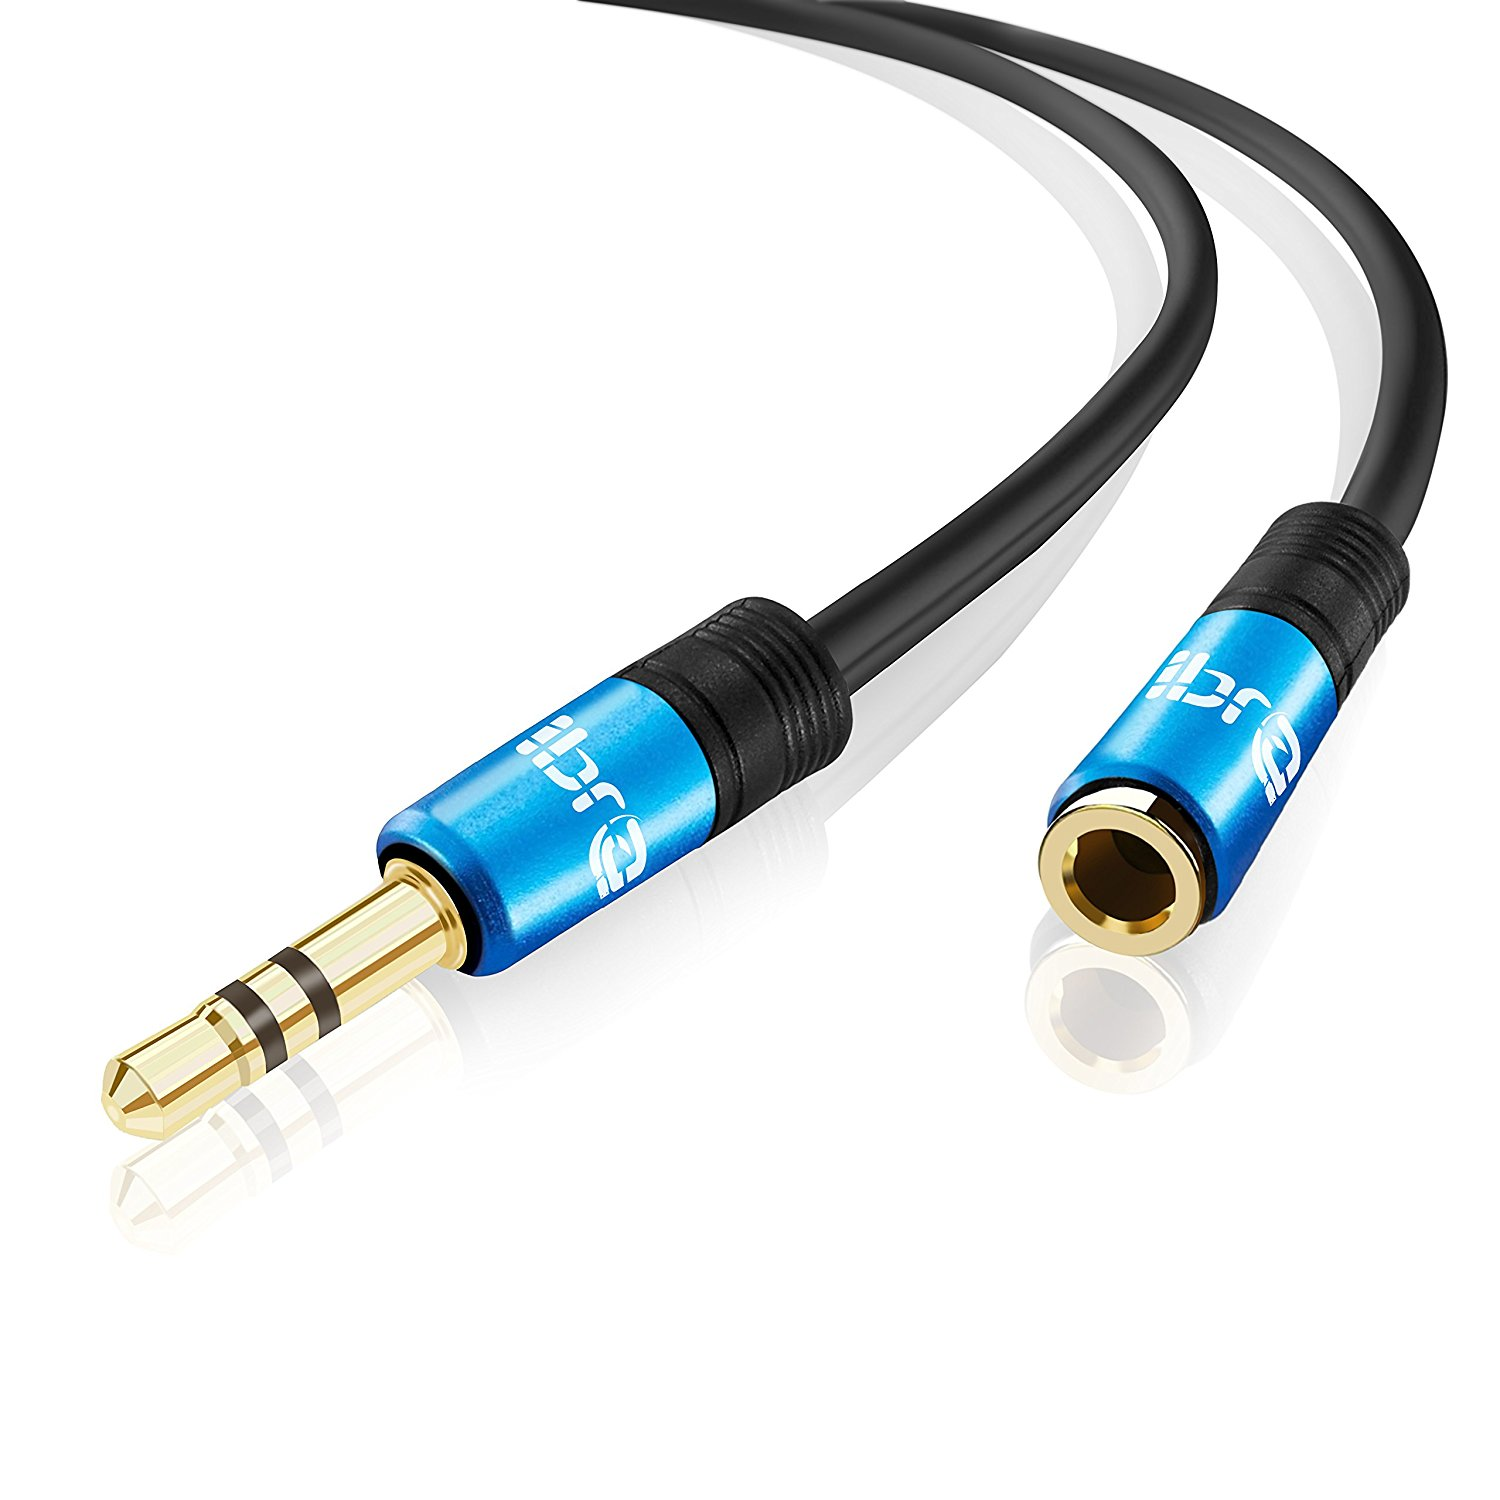 IBRA 0.5M Stereo Jack Extension Cable 3.5mm Male > 3.5mm Female - Blue